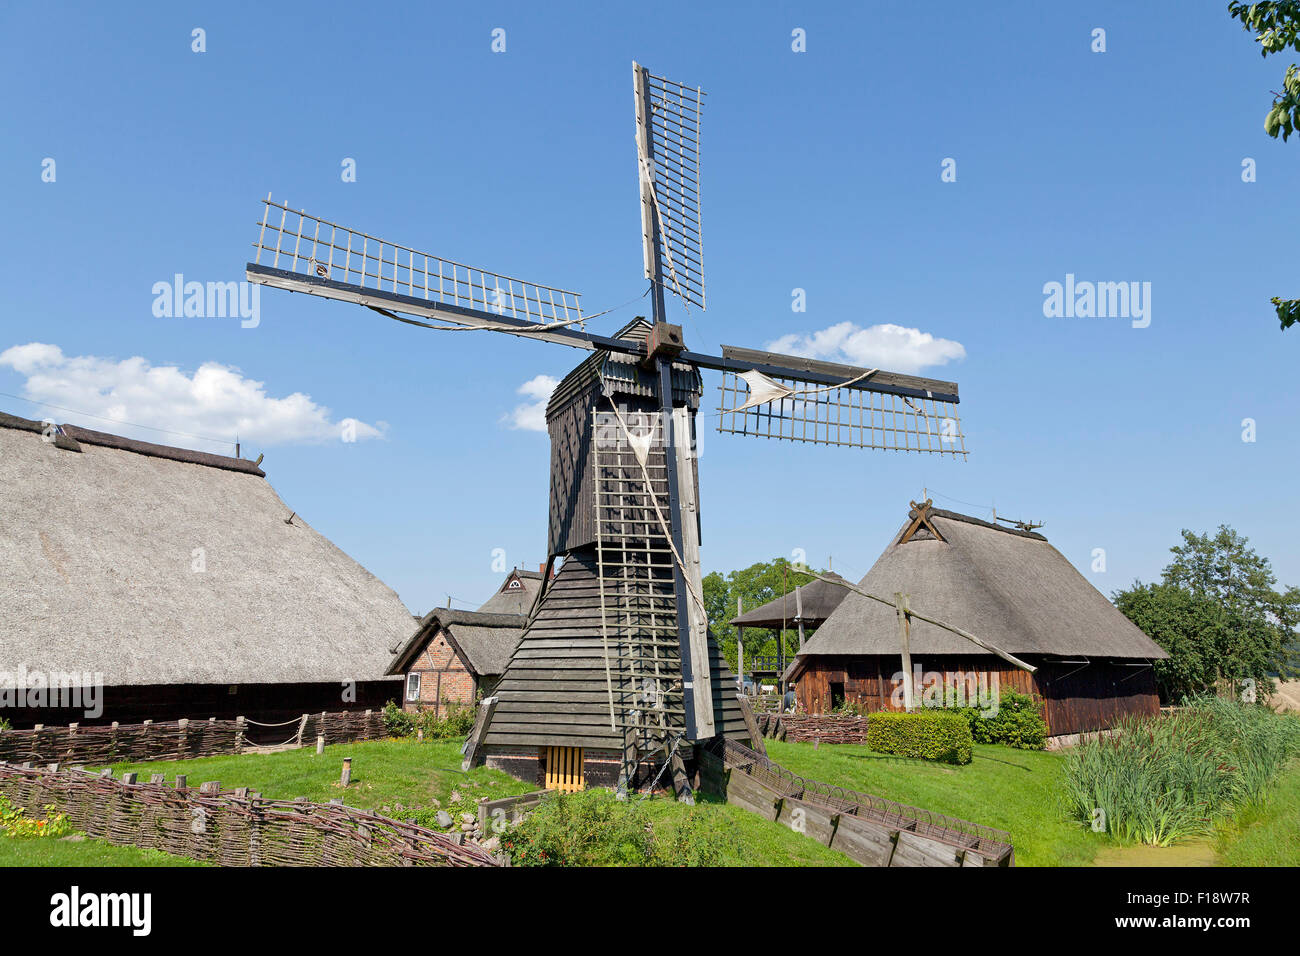 post mill, open air museum ´Rieck Haus´, Curslack, Vierlande, Hamburg, Germany Stock Photo